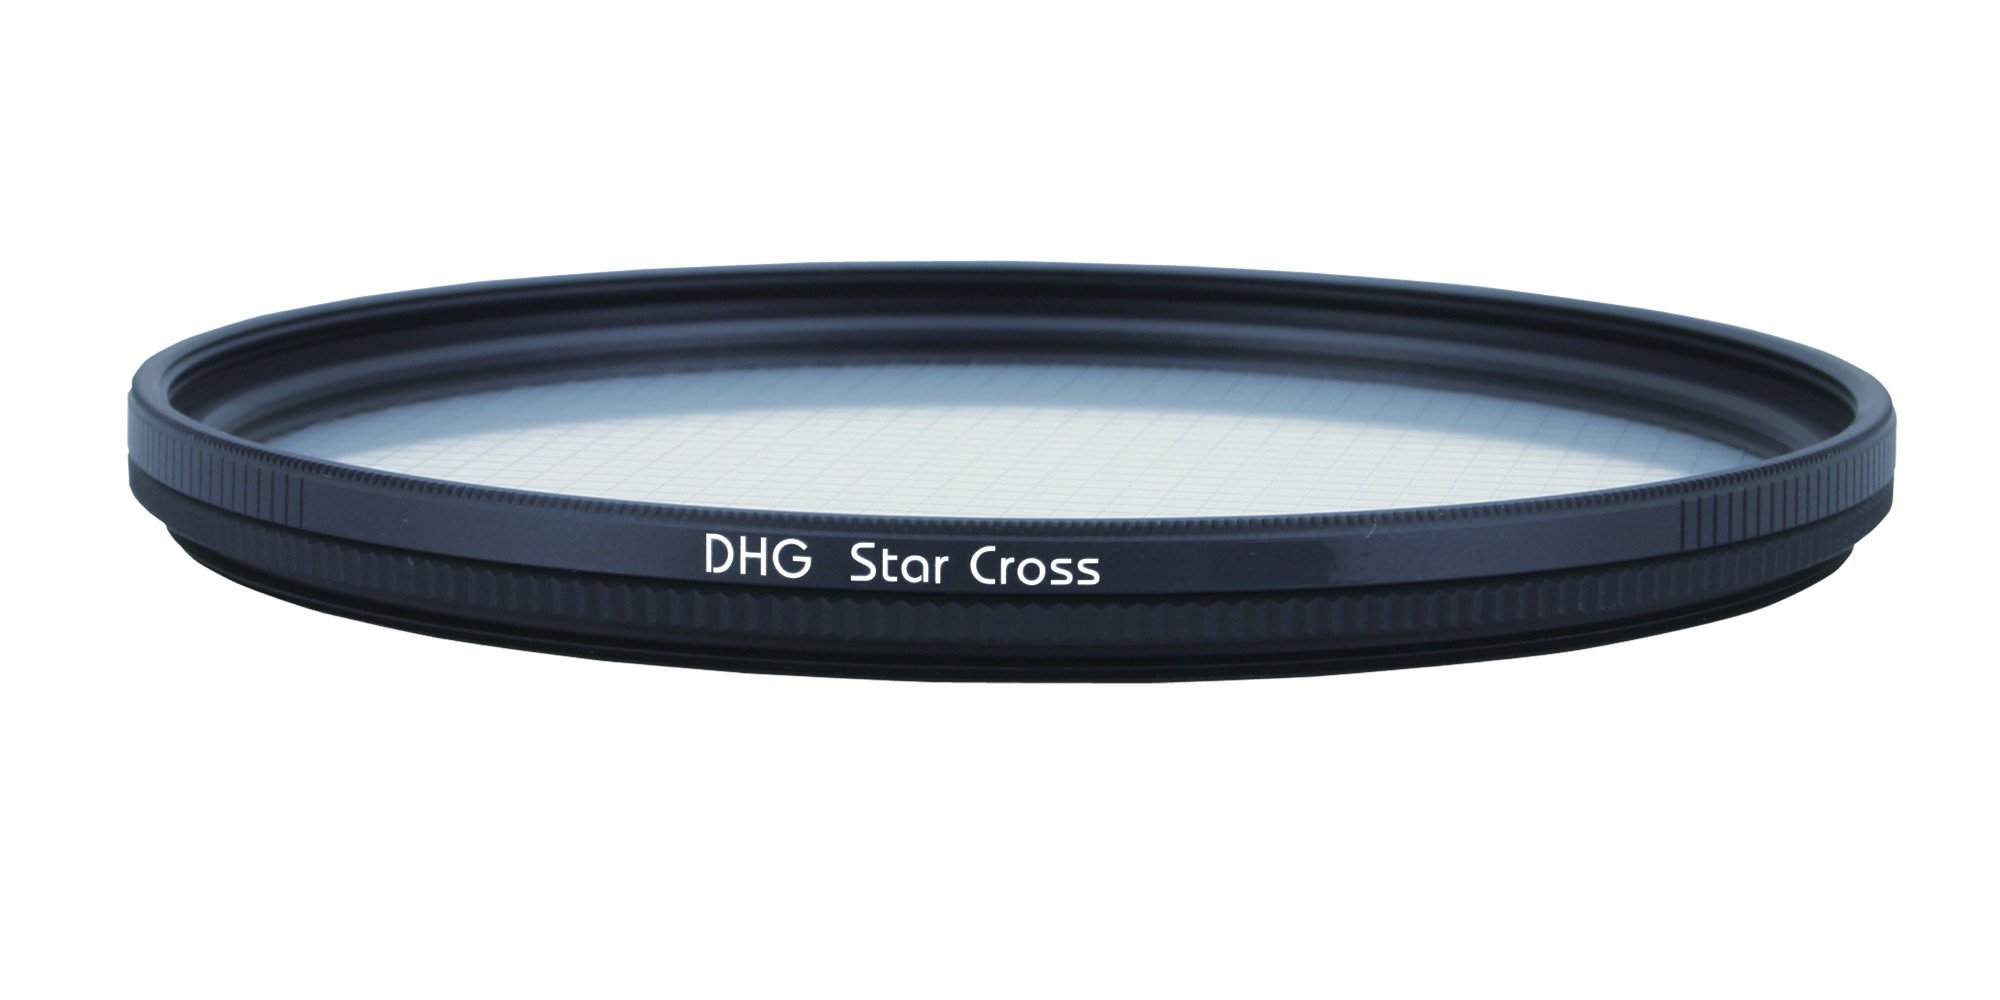 Marumi 72mm DHG Star Cross Filter by Marumi